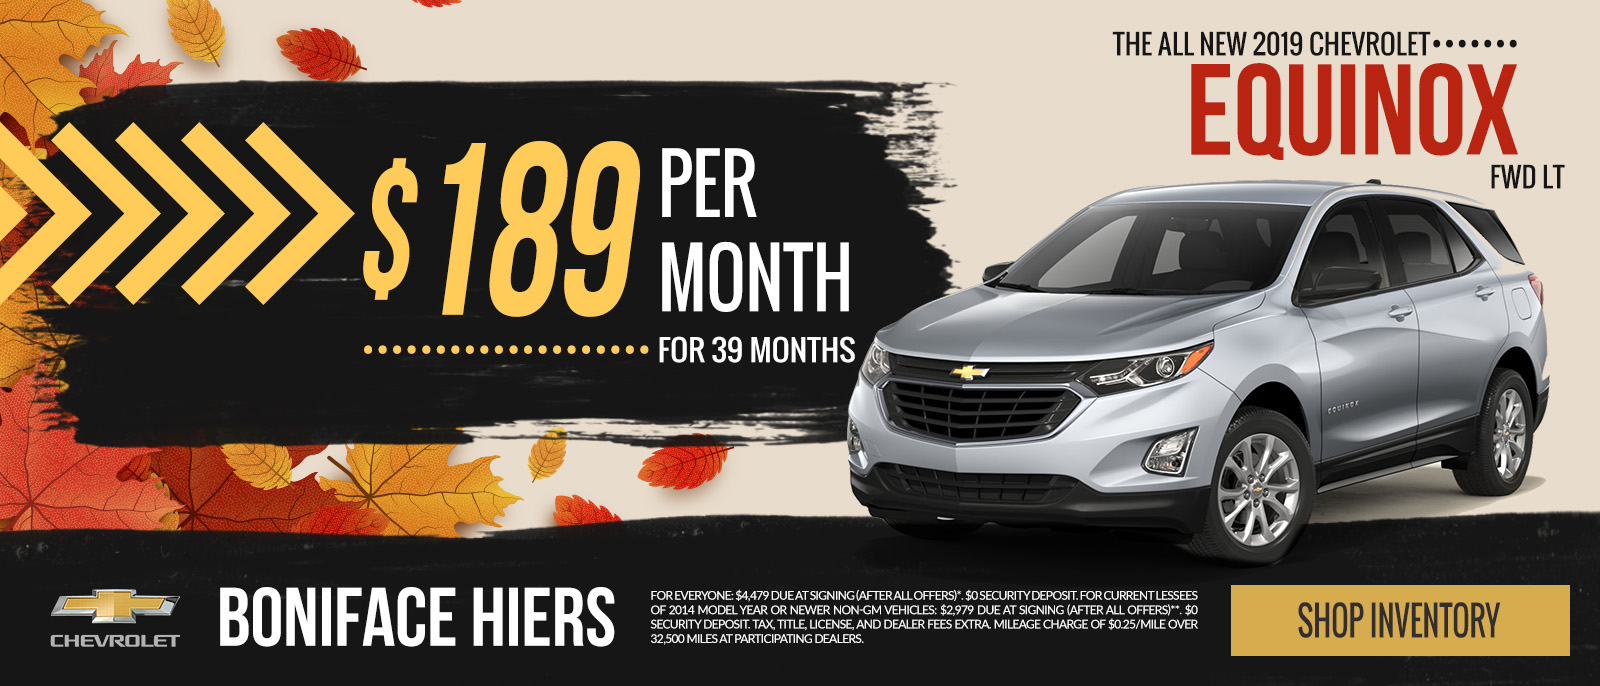 The All-New 2019 Chevy Equinox $0 Down or $199 a month. See Dealer For Full Details.